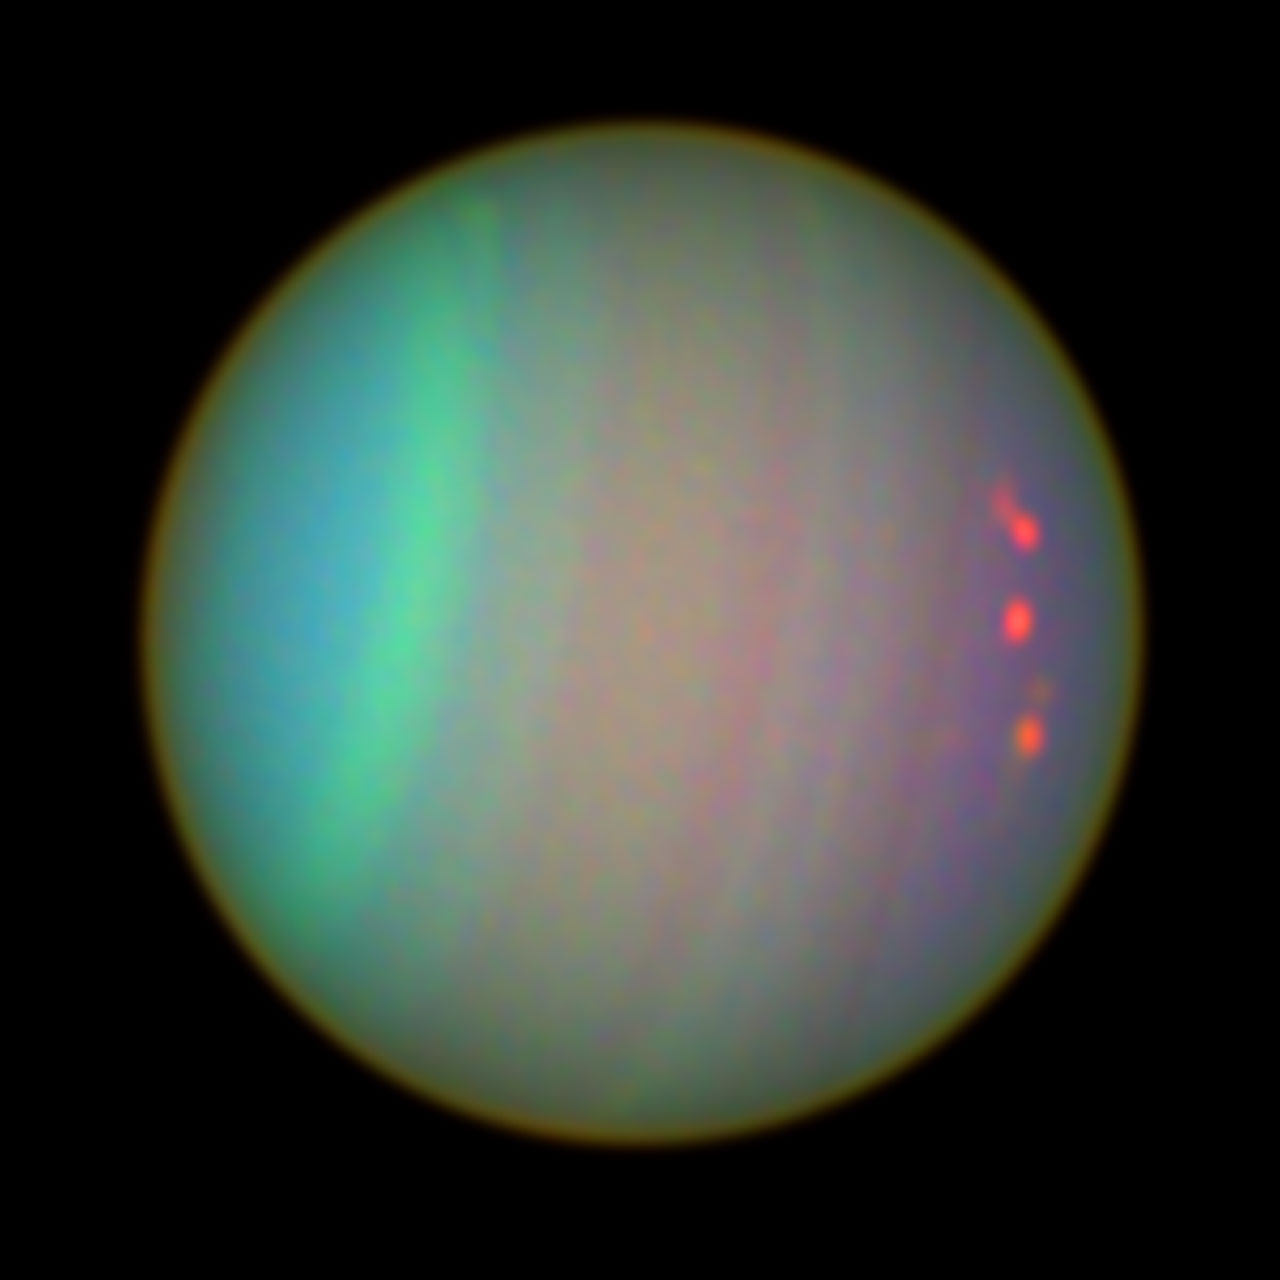 nasa photos of uranus - photo #11